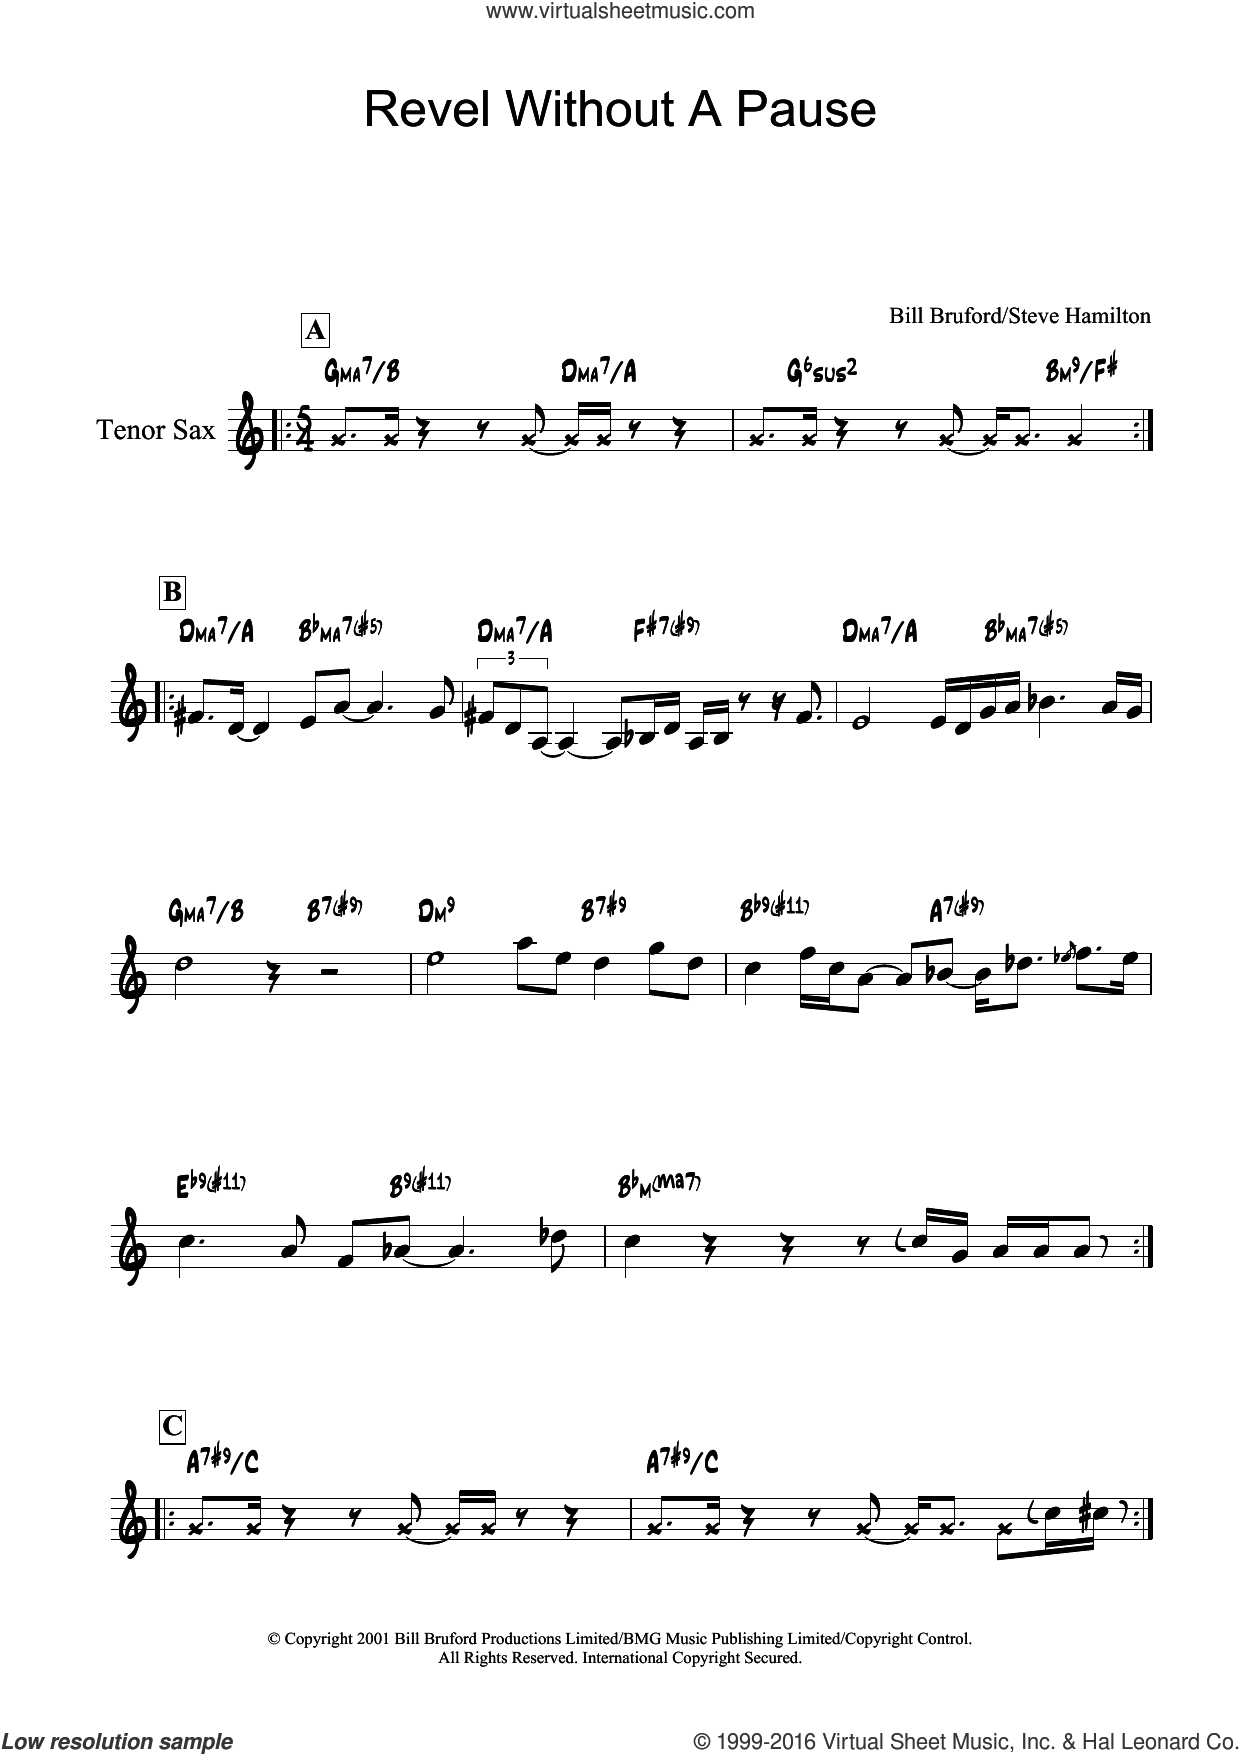 Revel Without A Pause sheet music for tenor saxophone solo by Bill Bruford and Steve Hamilton, intermediate skill level